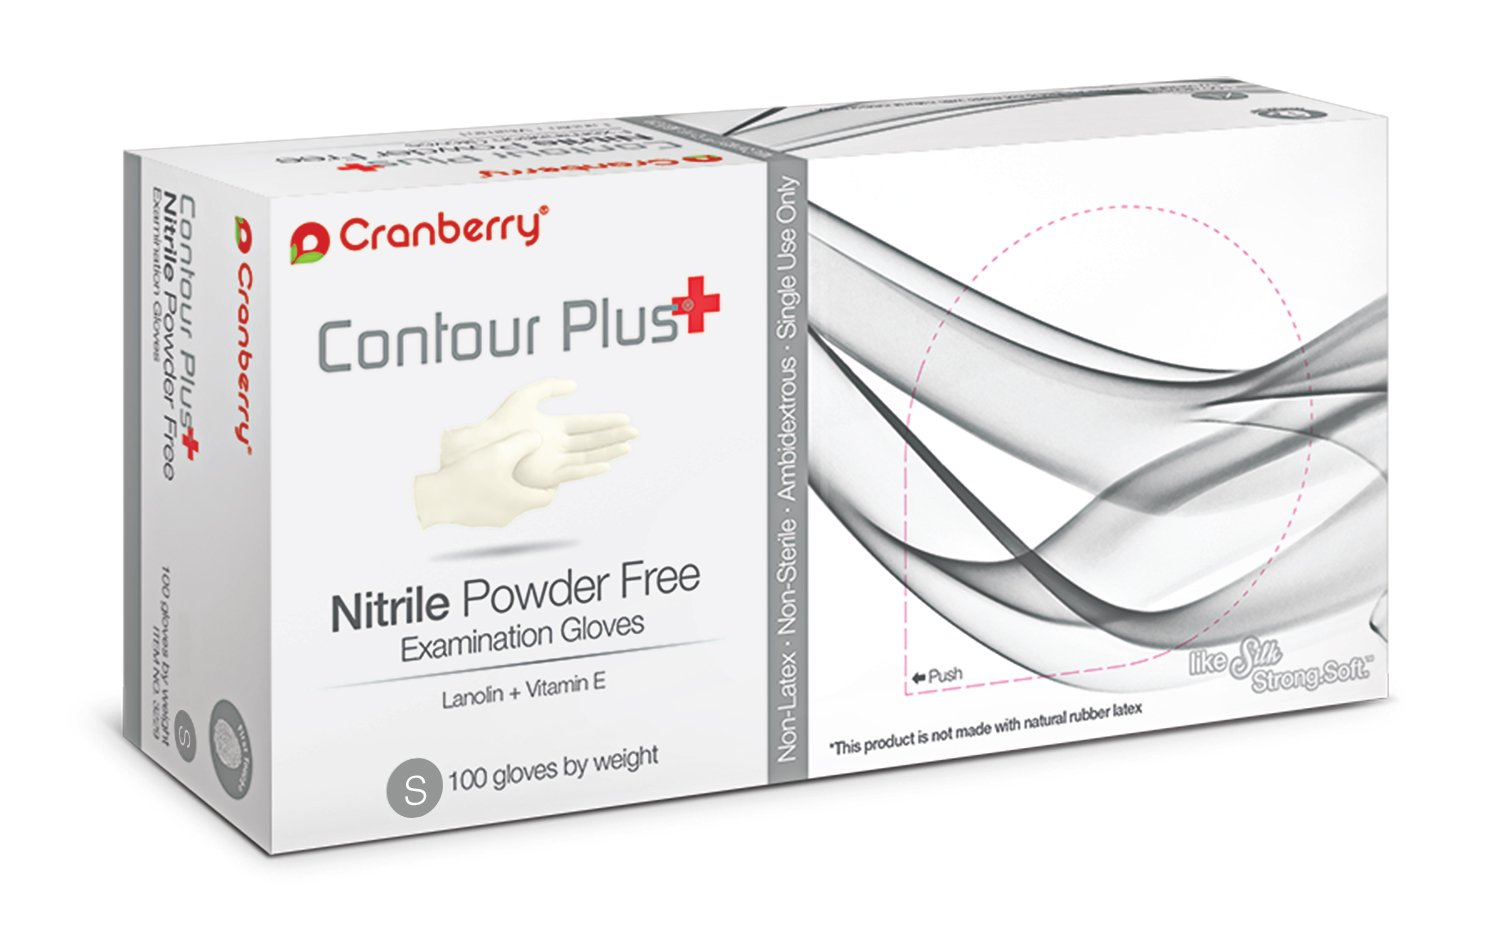 Cranberry USA CR3226case Contour Plus Nitrile Powder Free Exam Gloves, Small, White (Pack of 1000)